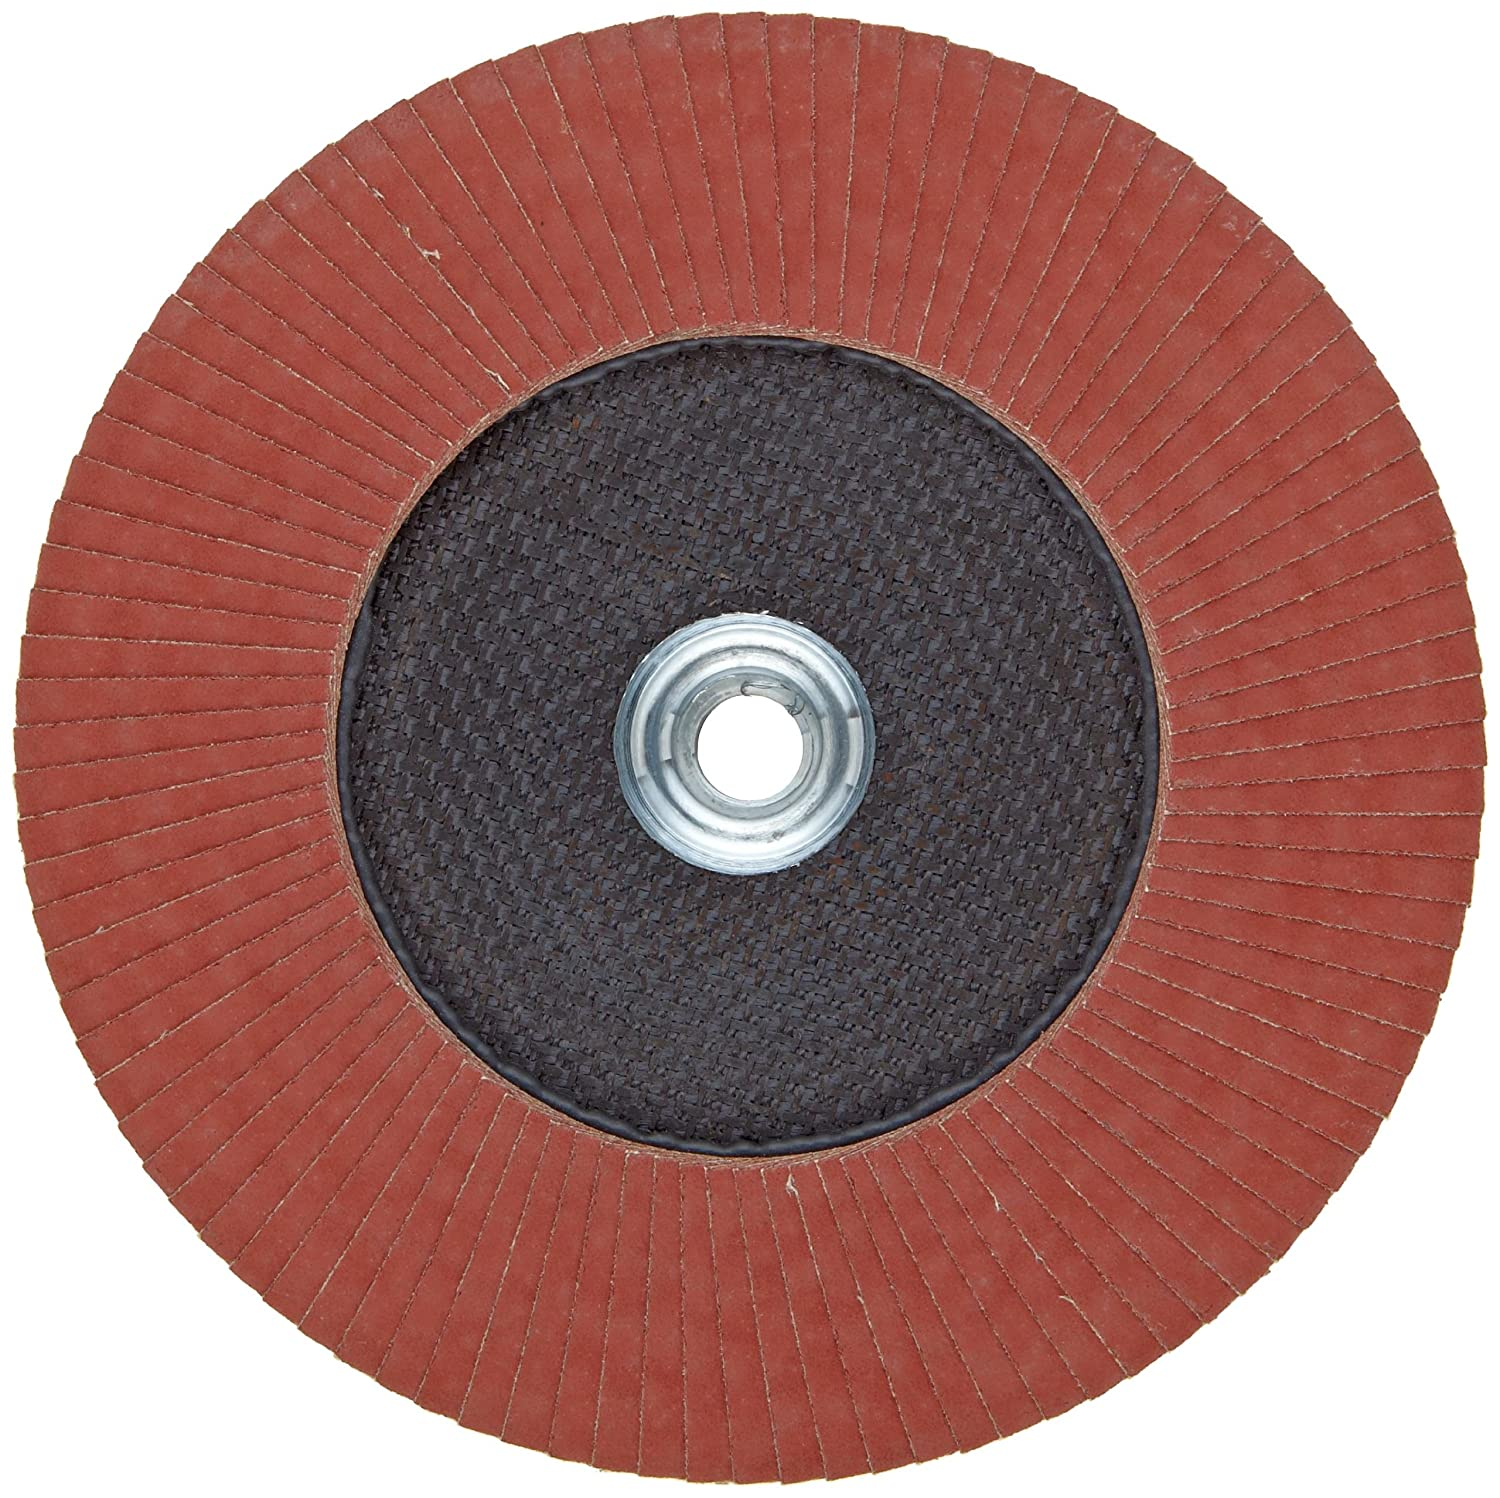 PFERD Polifan SG CO-COOL Abrasive Flap Disc Phenolic Resin Backing 120 Grit Type 29 Aluminum Oxide 4-1//2 Dia. Threaded Hole Pack of 1